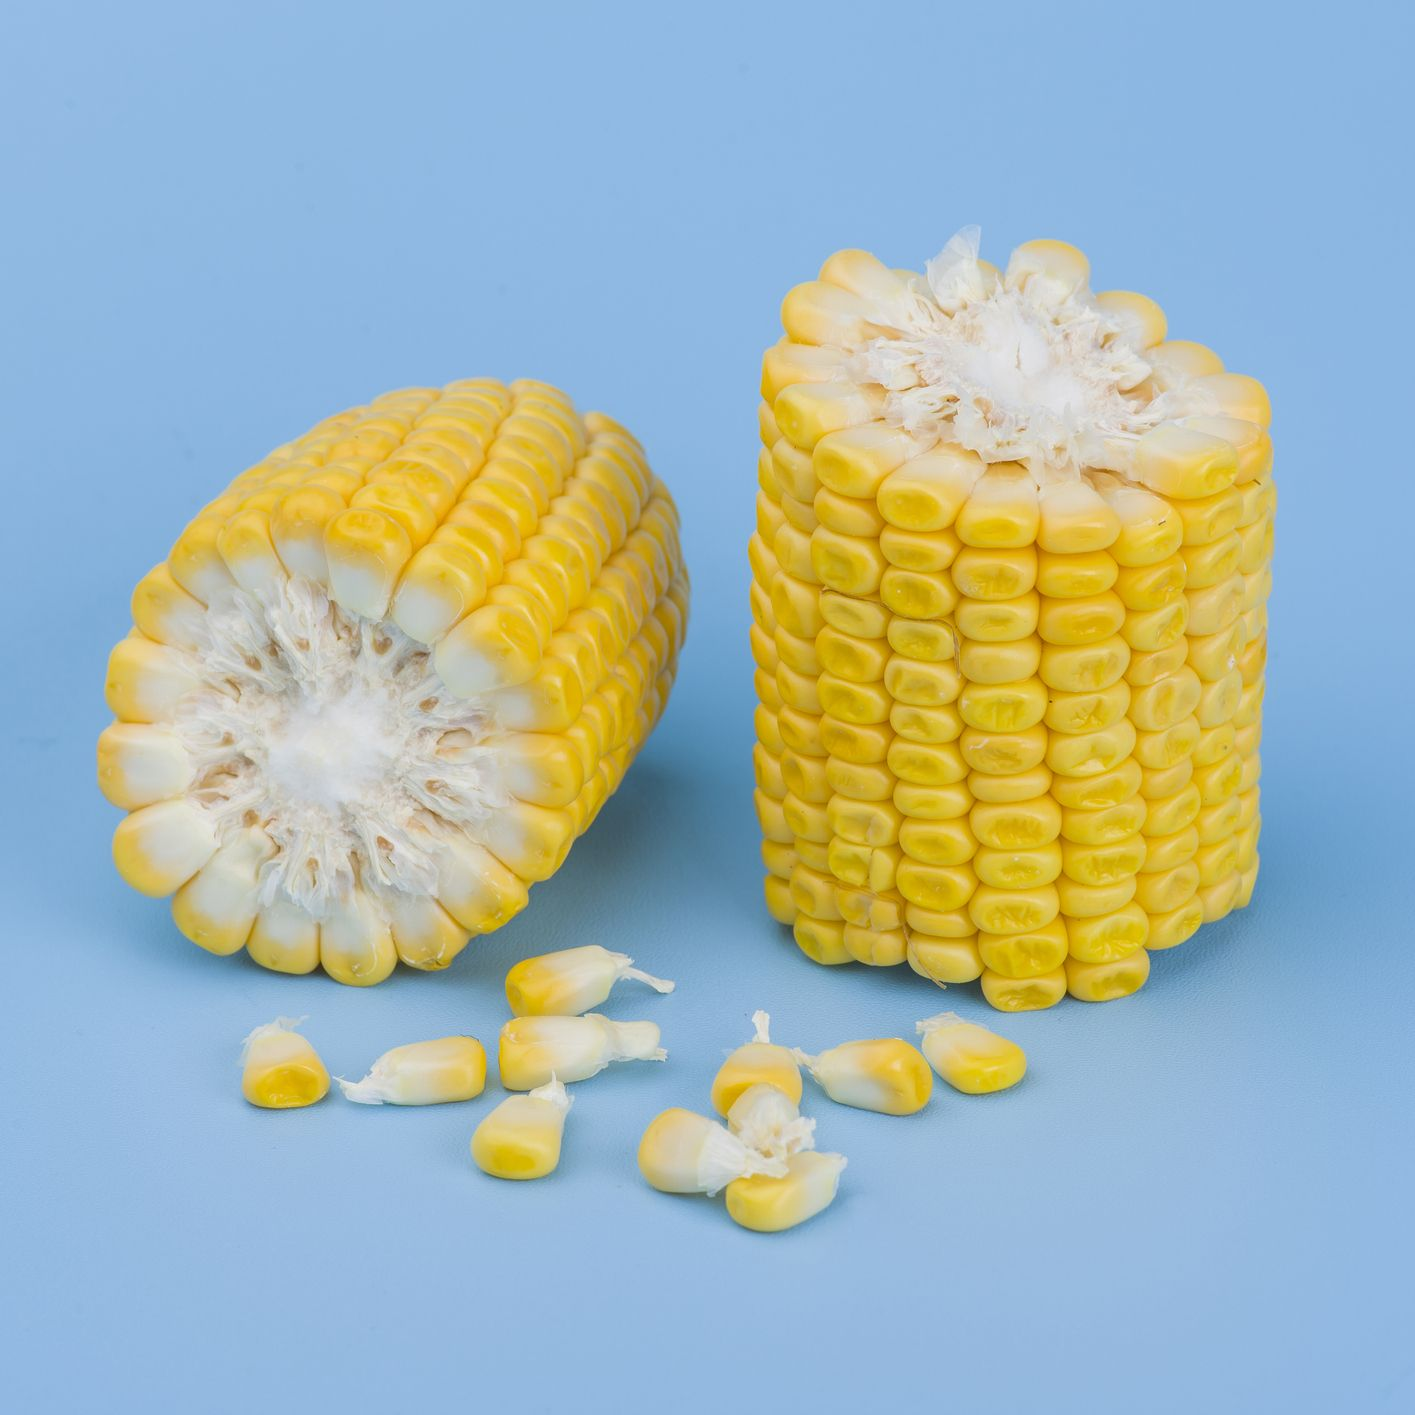 Close-Up Of Corn Against Blue Background